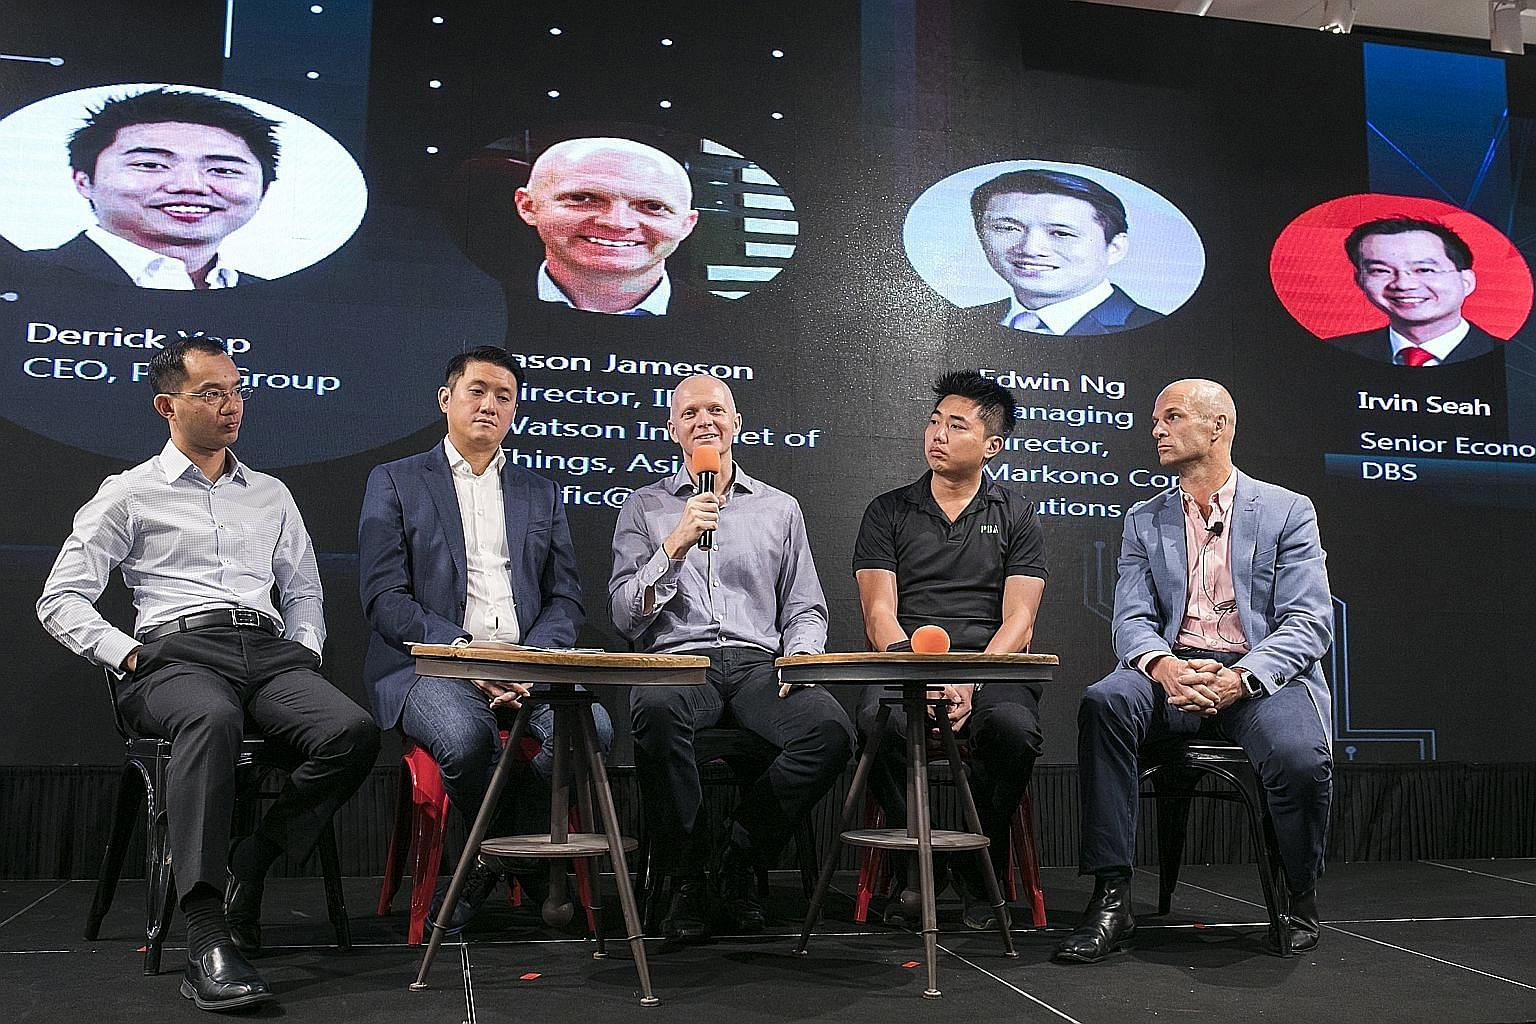 On The Future of Electronics panel yesterday were (from left) Mr Irvin Seah, senior economist at DBS; Mr Edwin Ng, managing director of Markono Content Solutions Group; Mr Jason Jameson, director, IBM Watson Internet of Things, Asia Pacific@IBM; Mr D